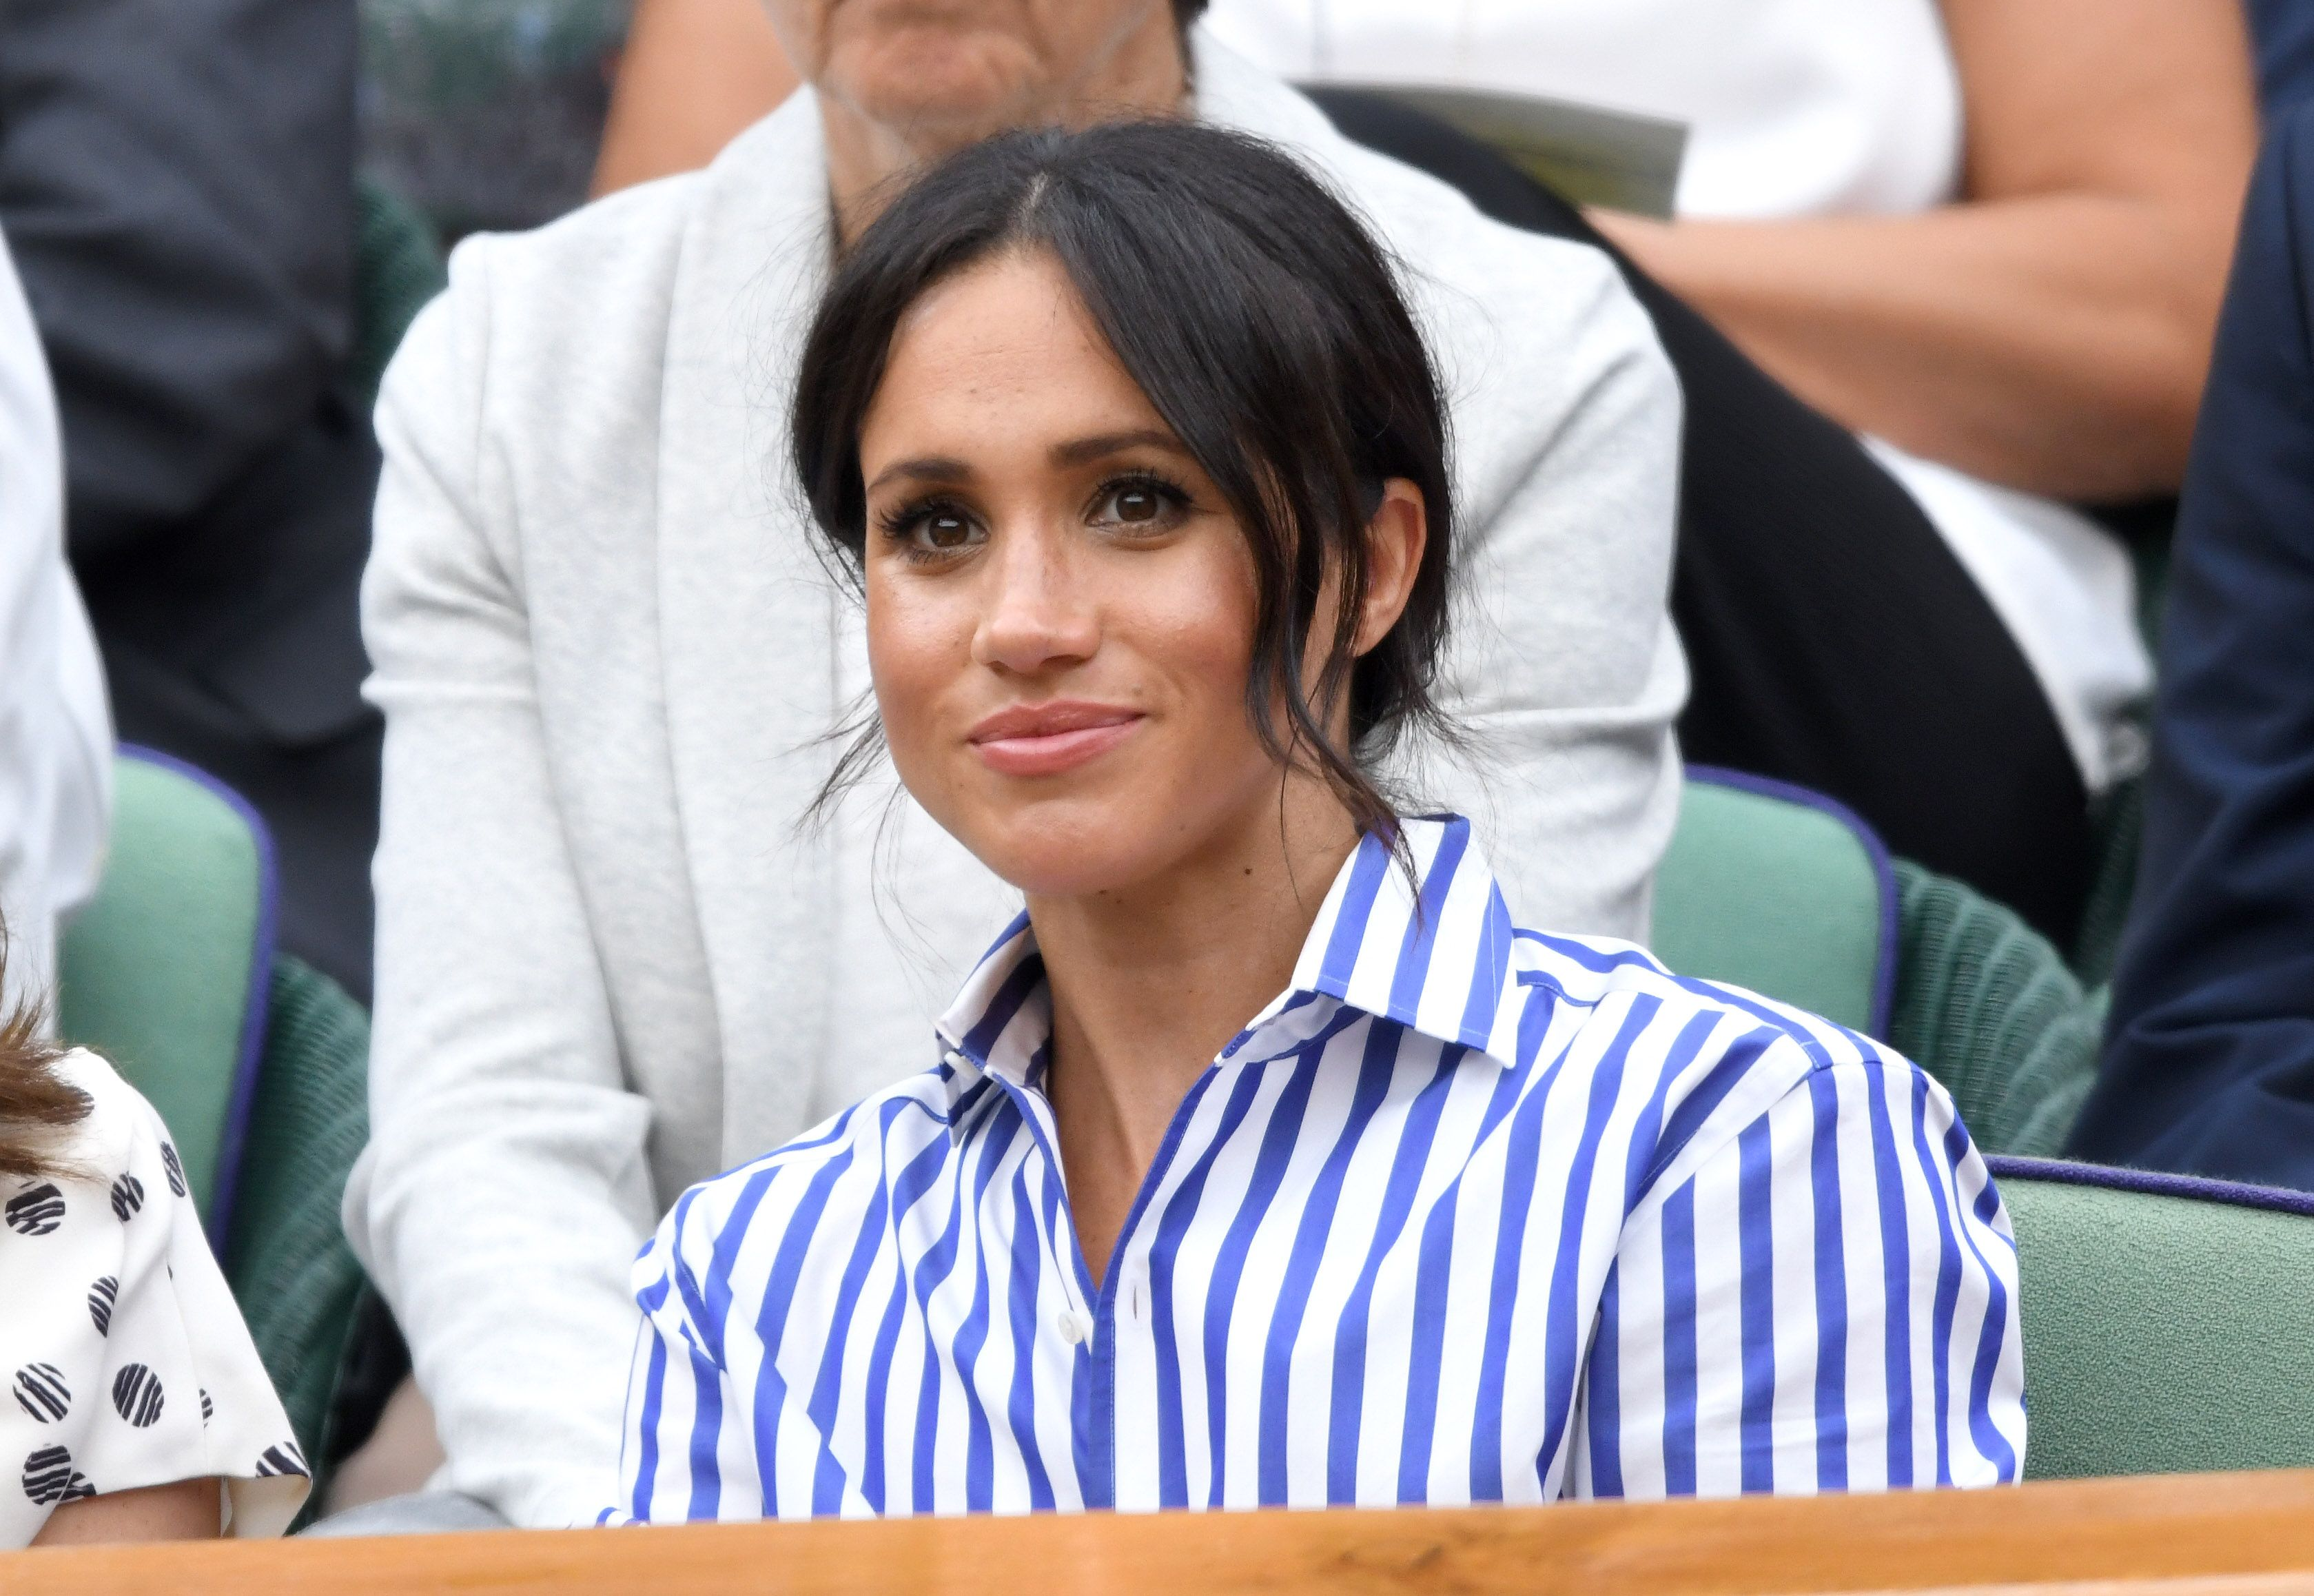 Meghan Markle Will Reportedly Make Her Next Public Appearance at Wimbledon in Just Days